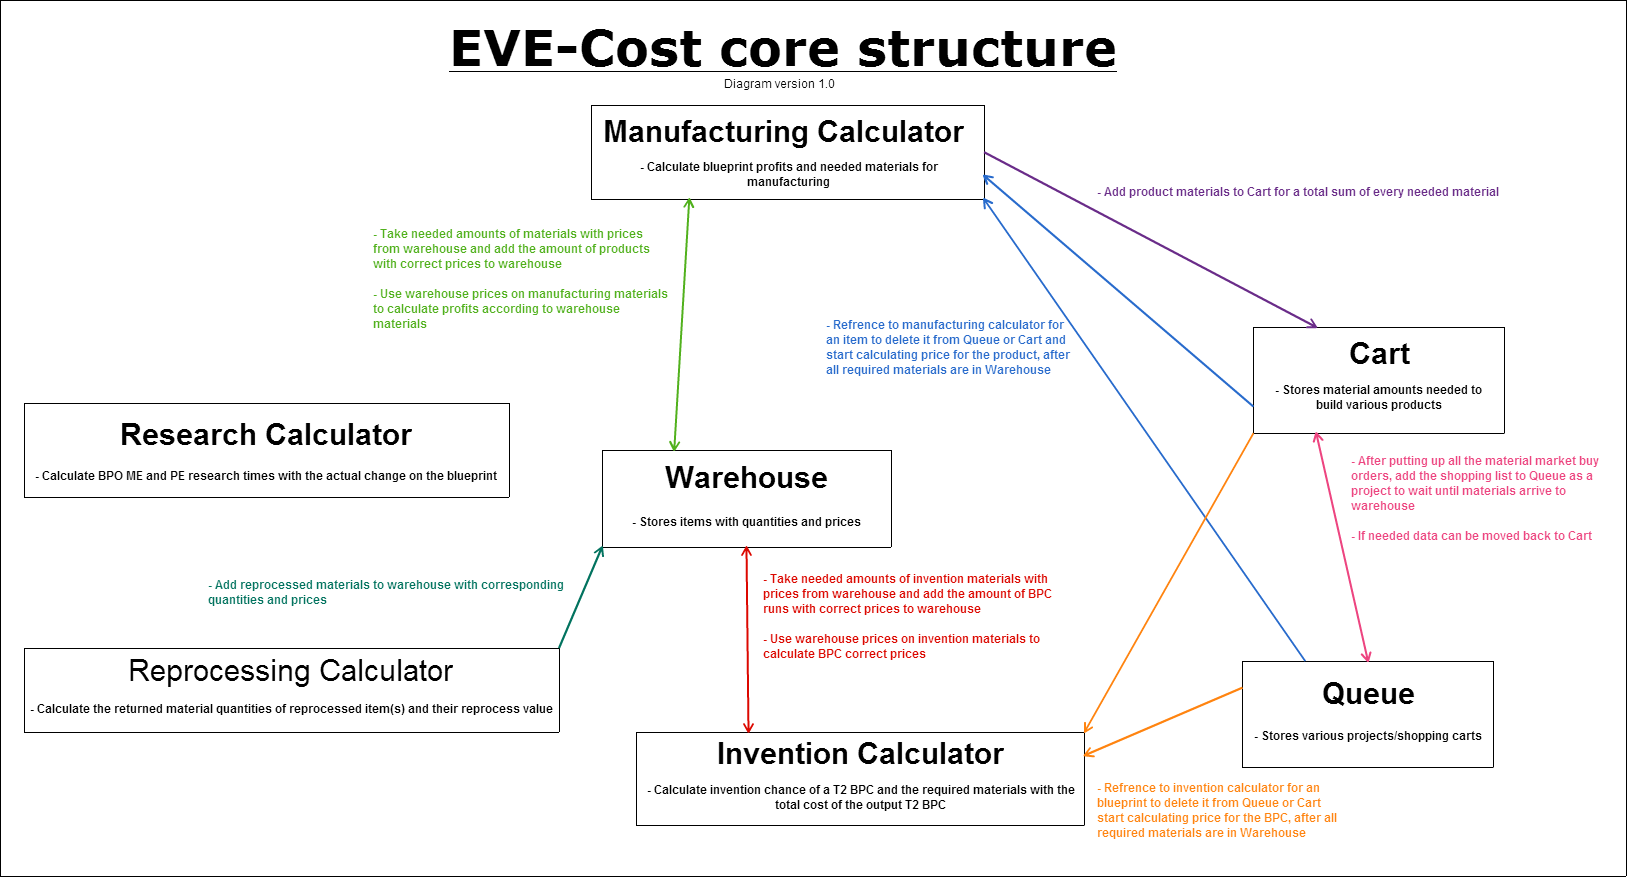 Eve cost news archive the part of what still needs to be added is colored red which is the only part missing malvernweather Image collections